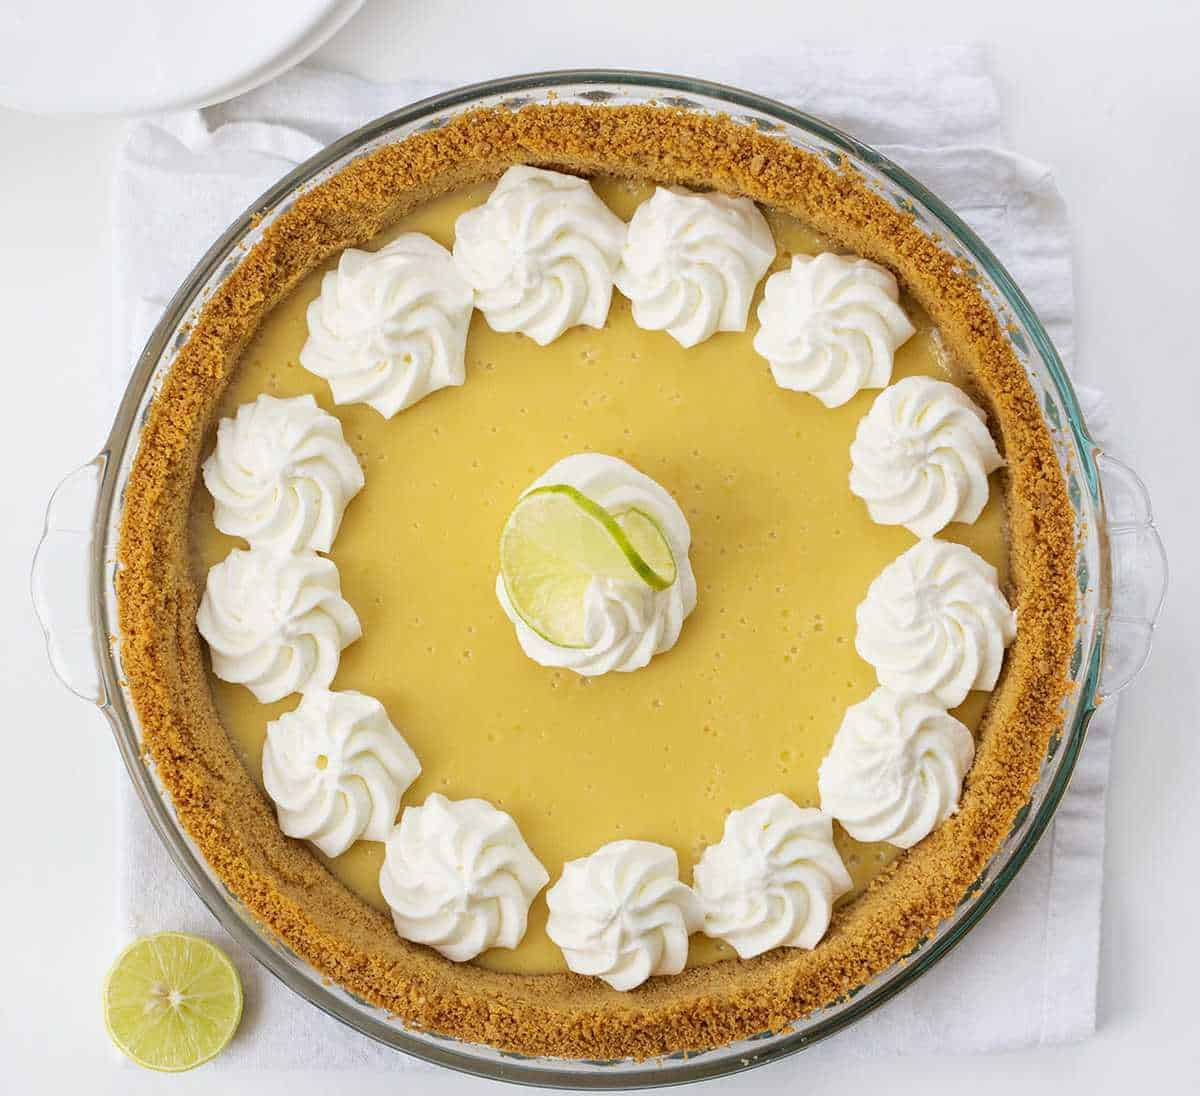 Overhead View of Key Lime Pie with Whipped Cream Dollops and a sliced key lime next to it